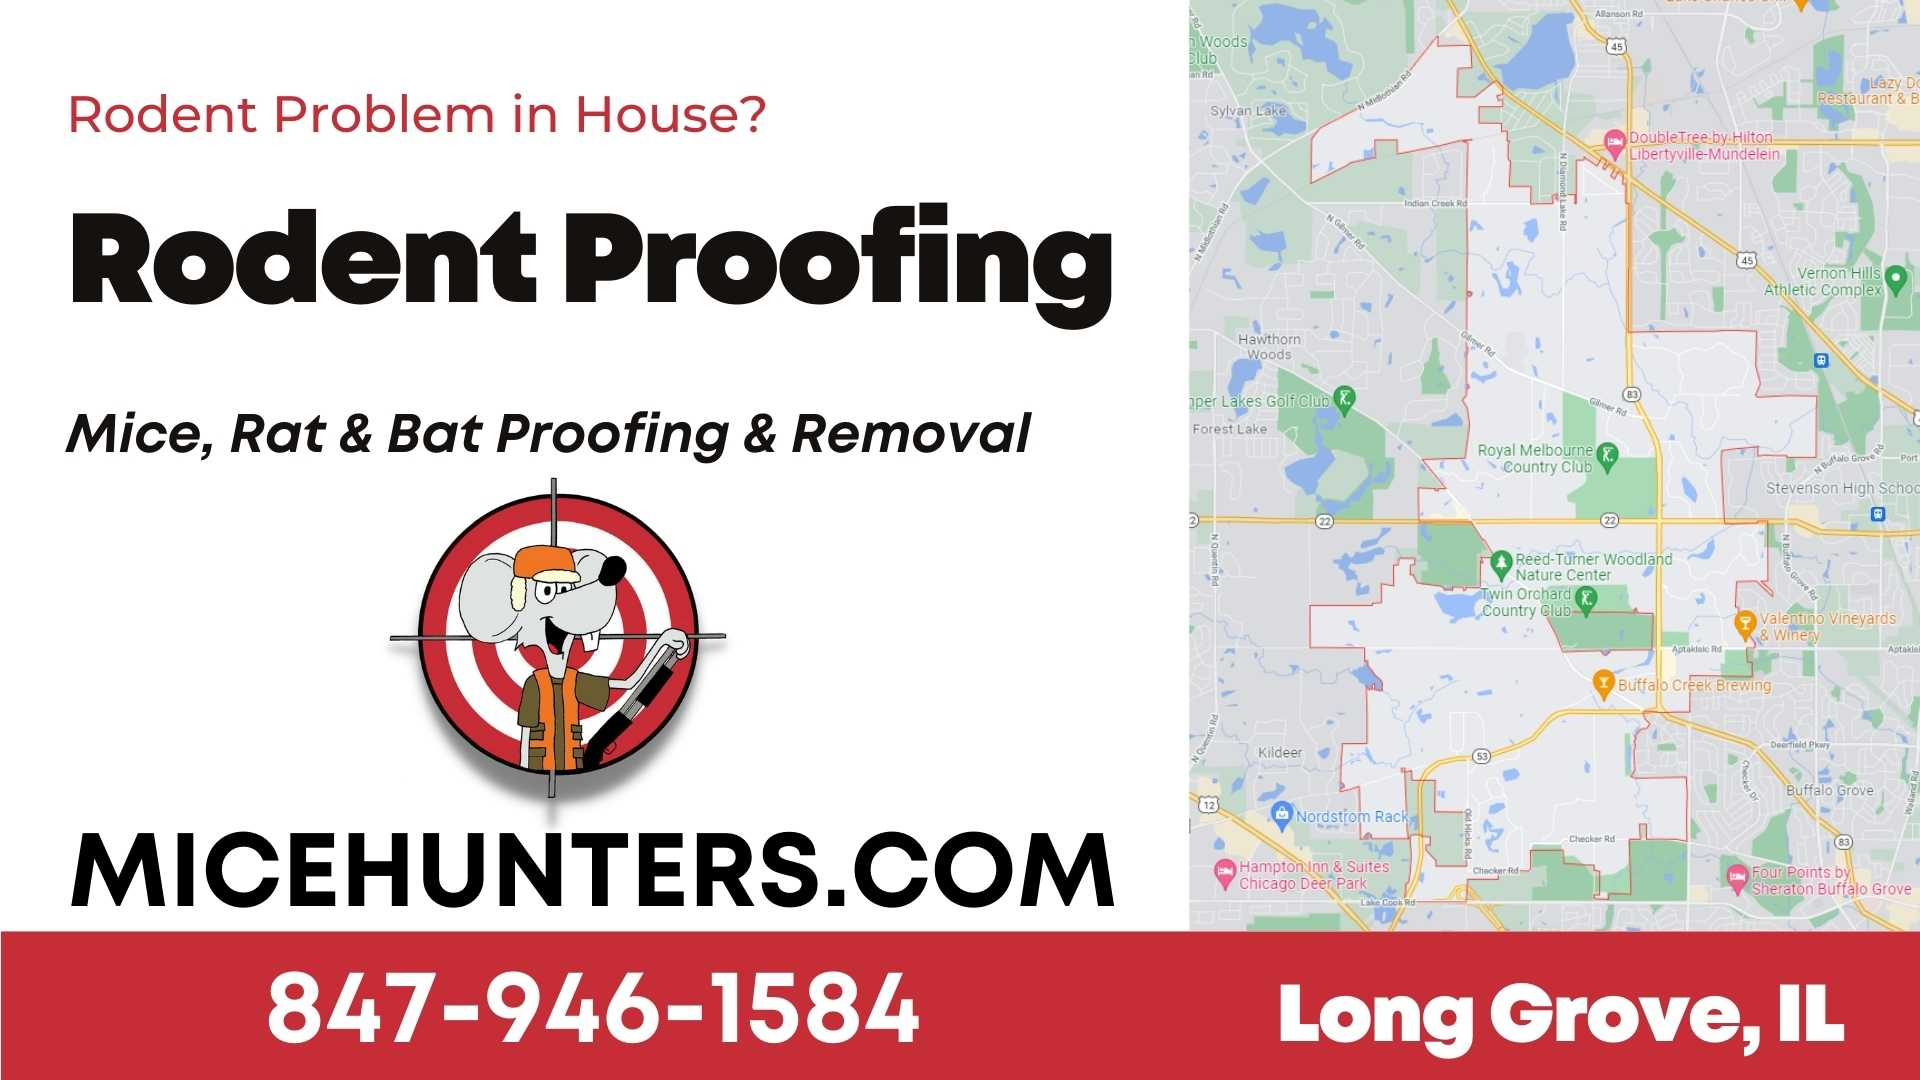 Long Grove Rodent and Mice Proofing Exterminator Near Me